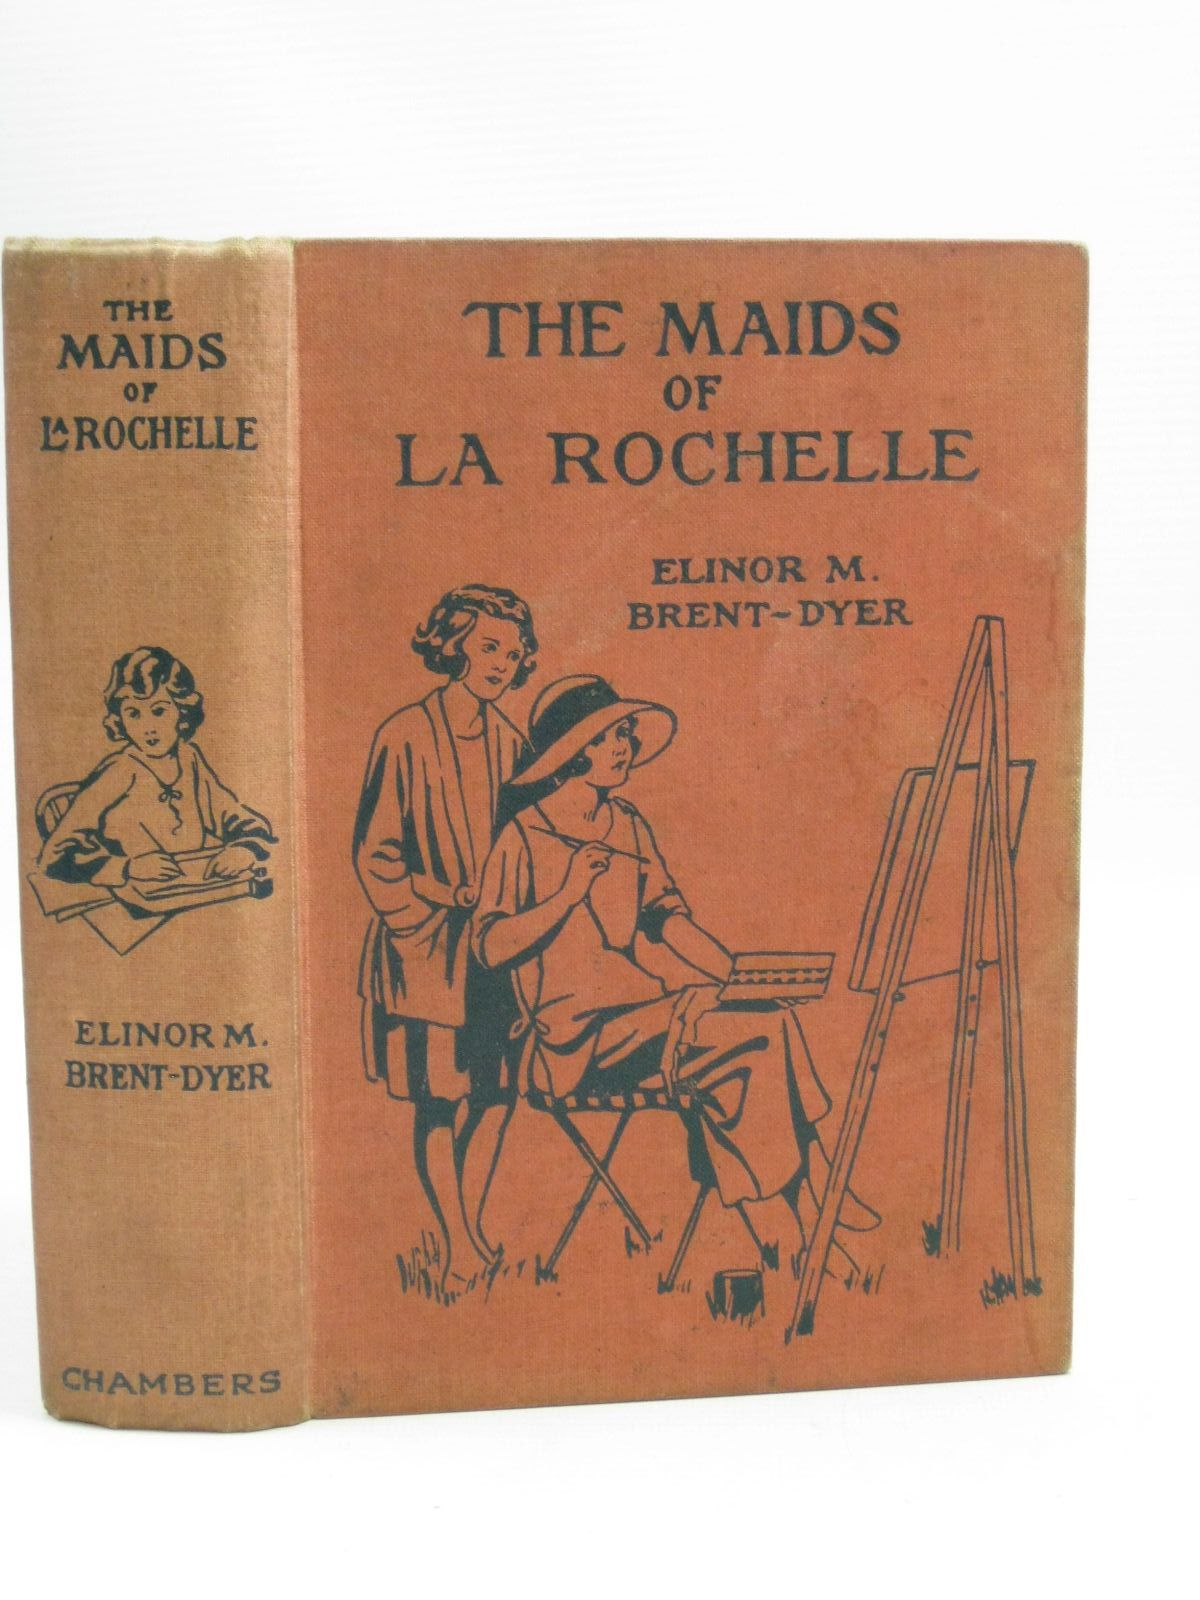 Photo of THE MAIDS OF LA ROCHELLE written by Brent-Dyer, Elinor M. illustrated by Brisley, Nina K. published by W. & R. Chambers Limited (STOCK CODE: 1405186)  for sale by Stella & Rose's Books